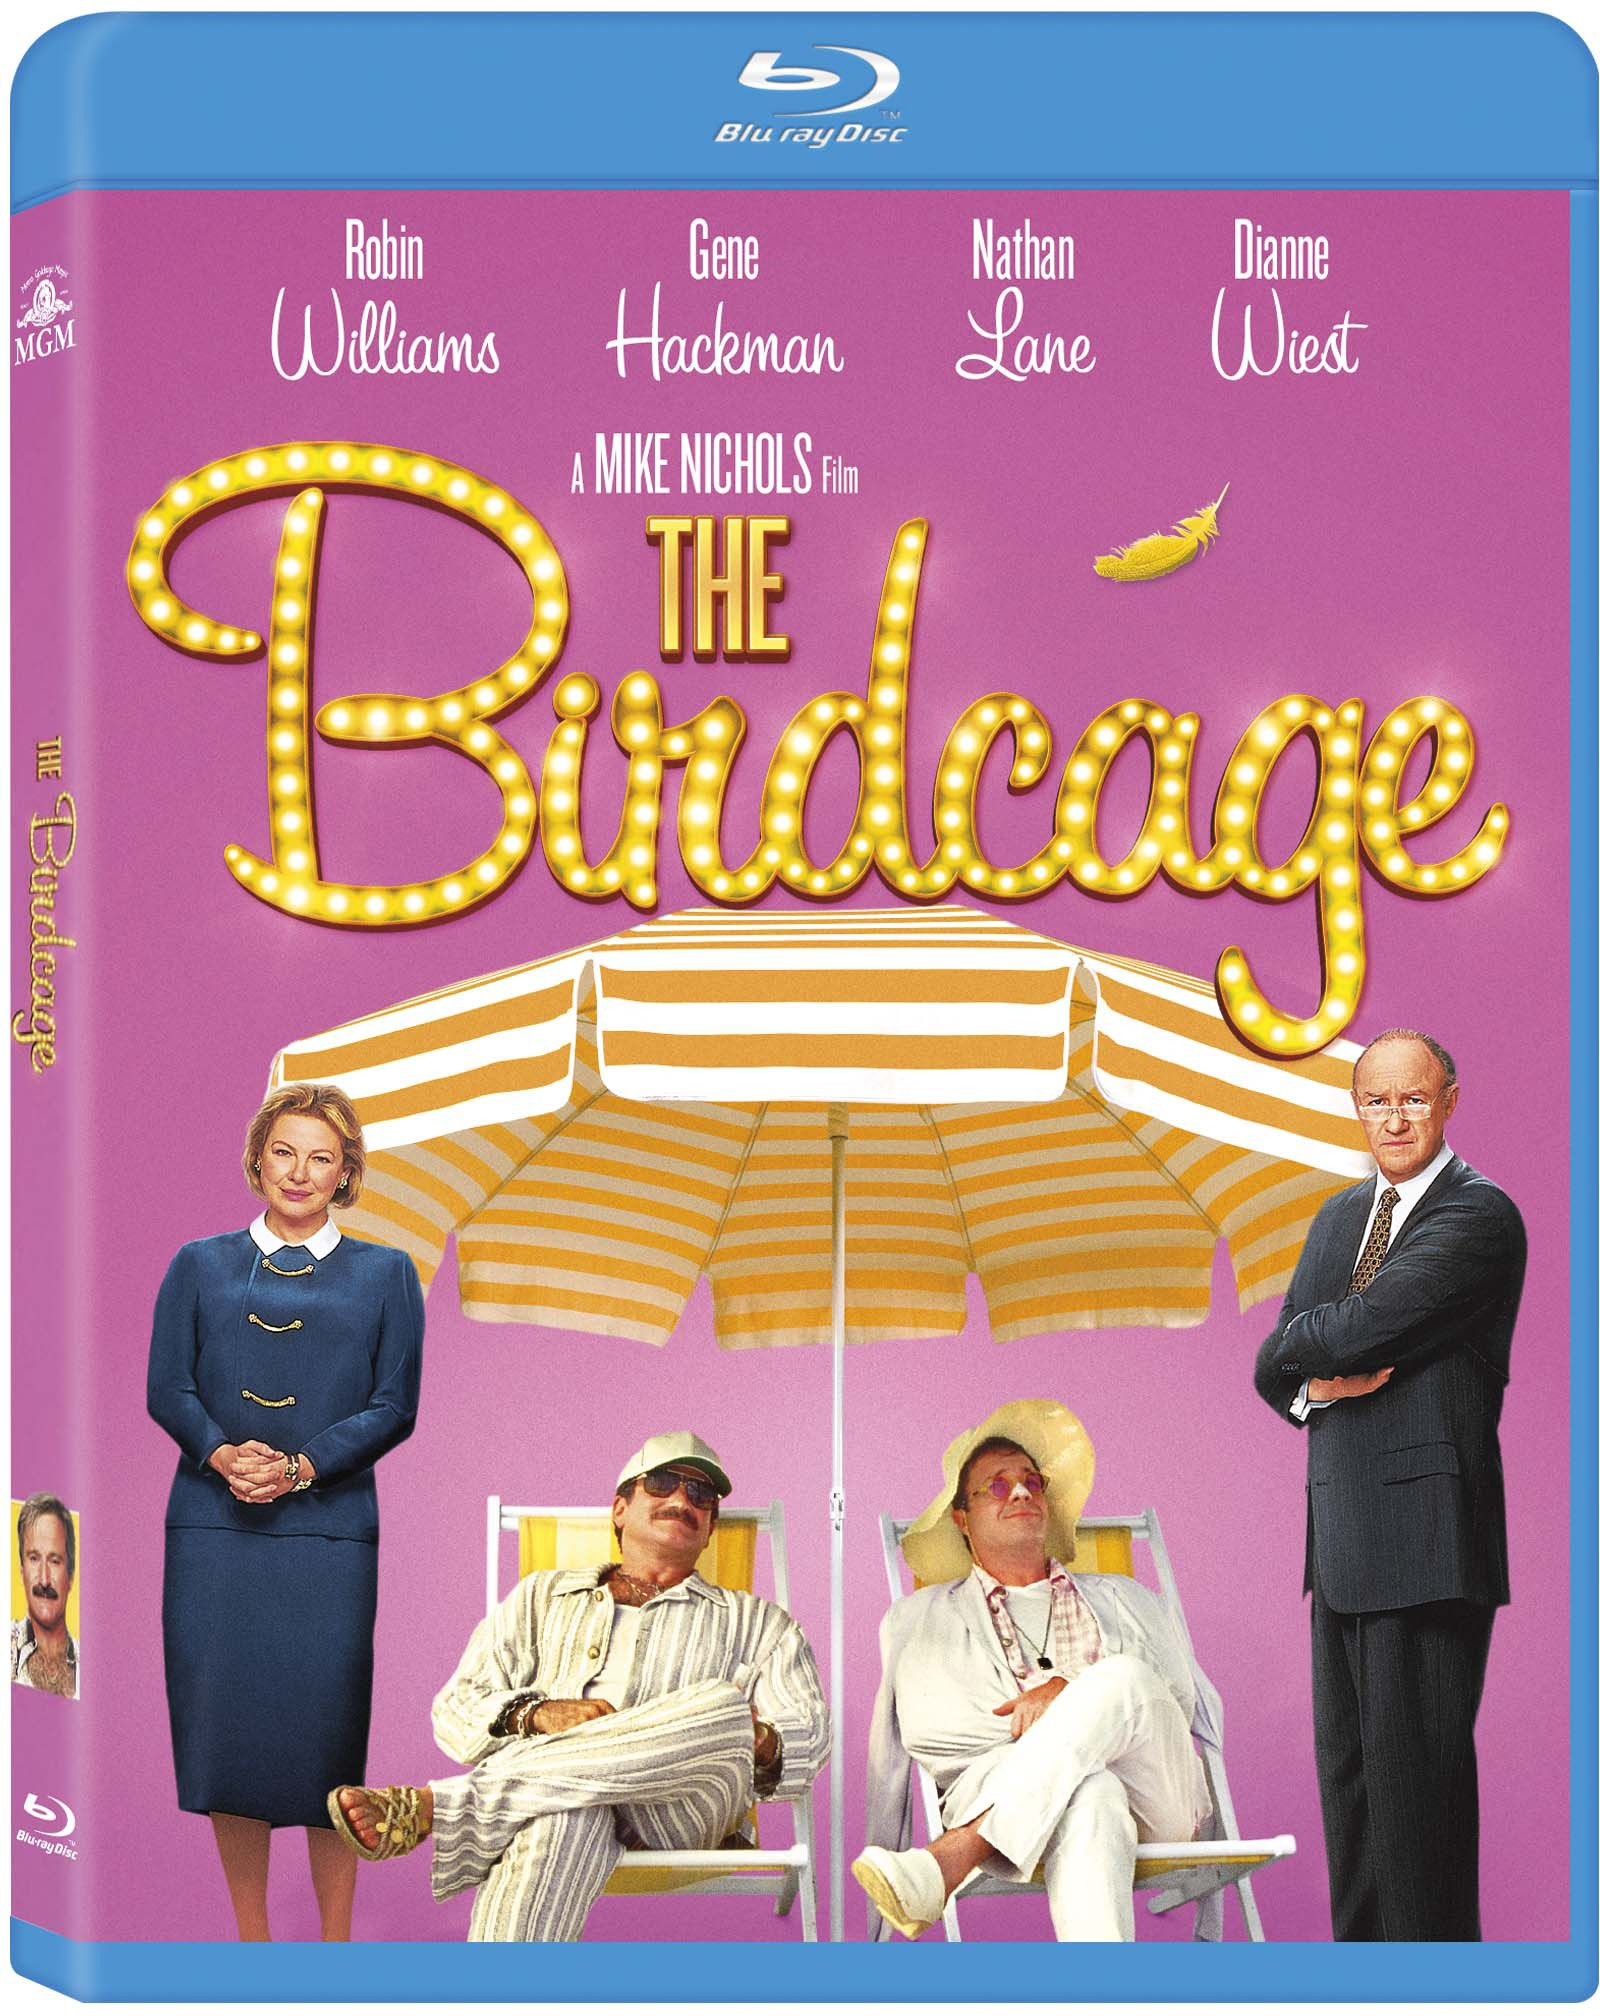 Blu-ray : The Birdcage (Dubbed, Widescreen, AC-3, Digital Theater System, Dolby)